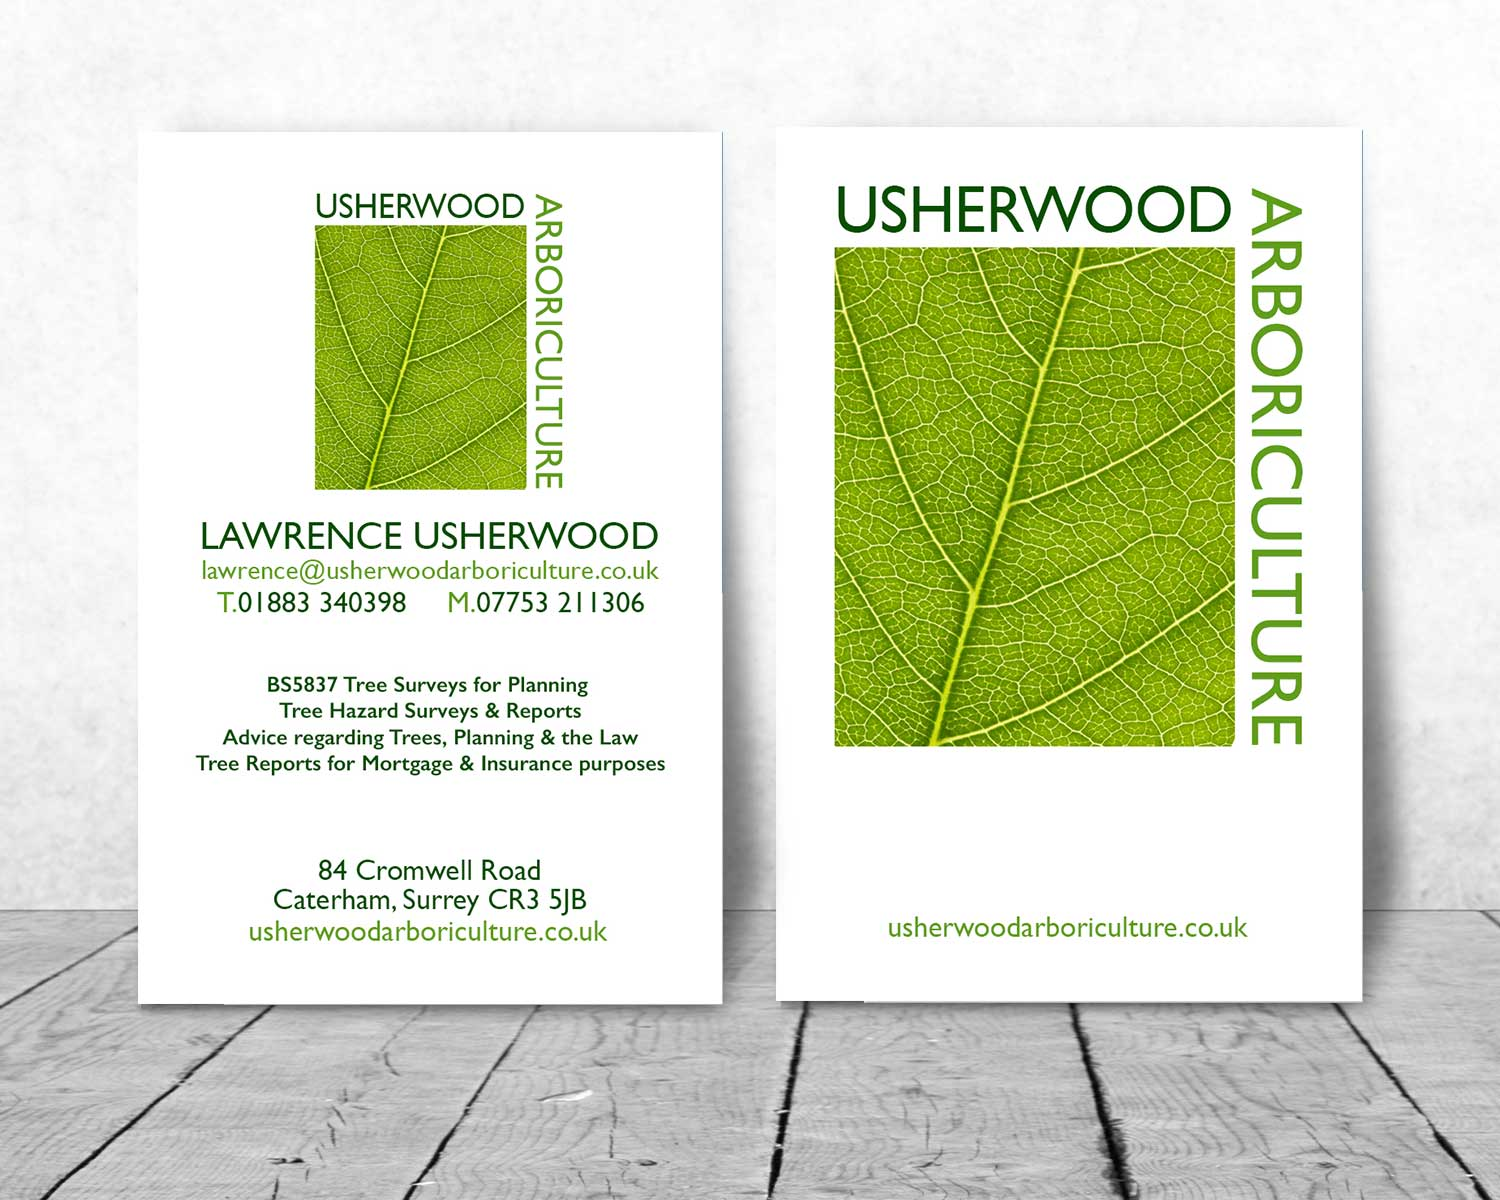 Caterham-Bradning-Logo-Design-for-Usherwood-Arboriculture